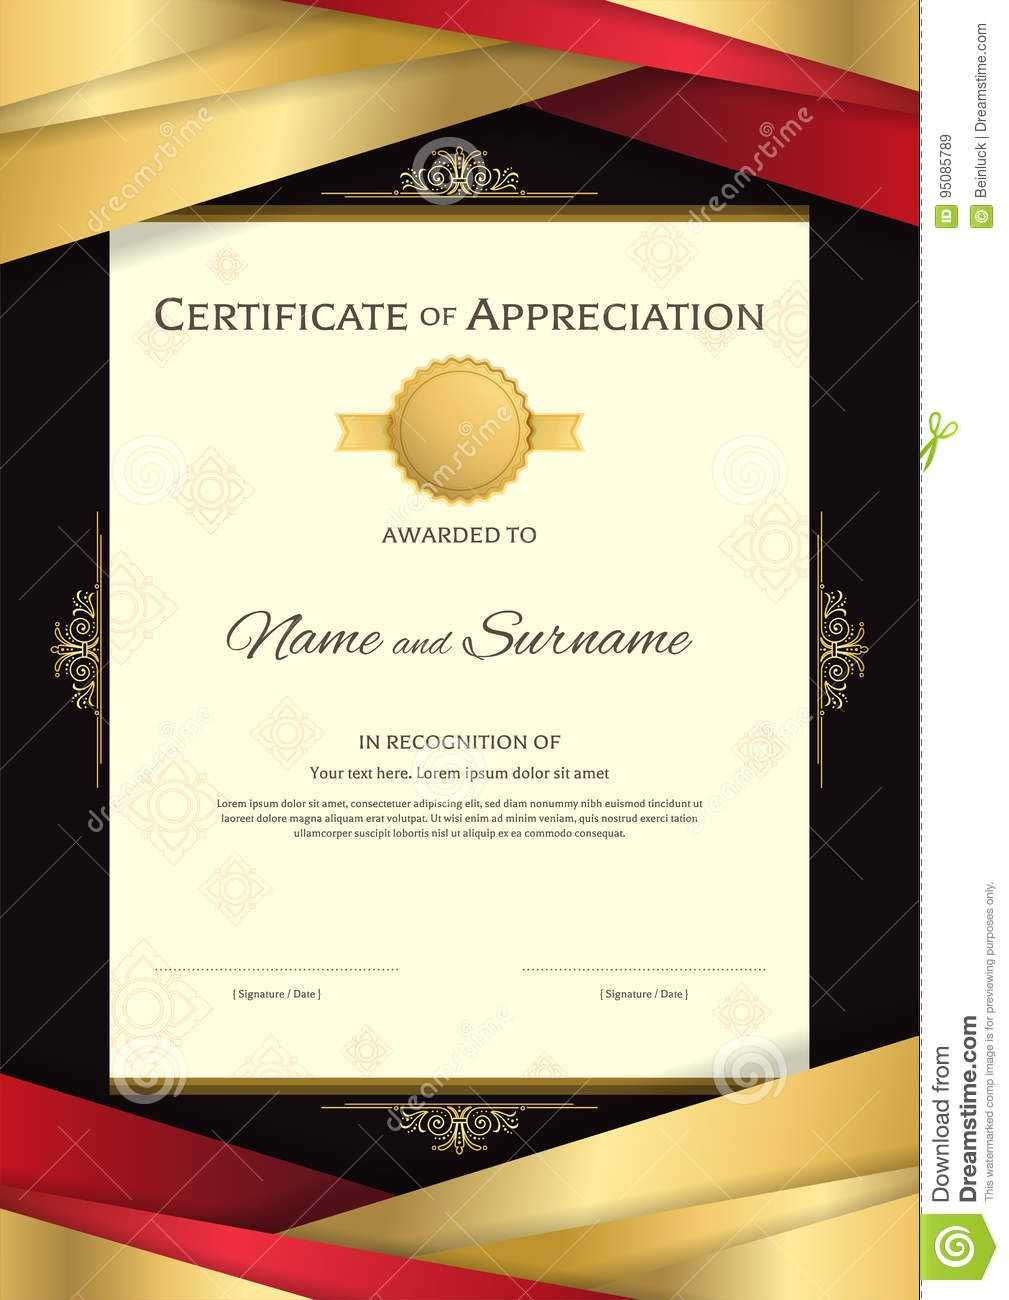 Portrait Luxury Certificate Template With Elegant Golden for Elegant Certificate Templates Free